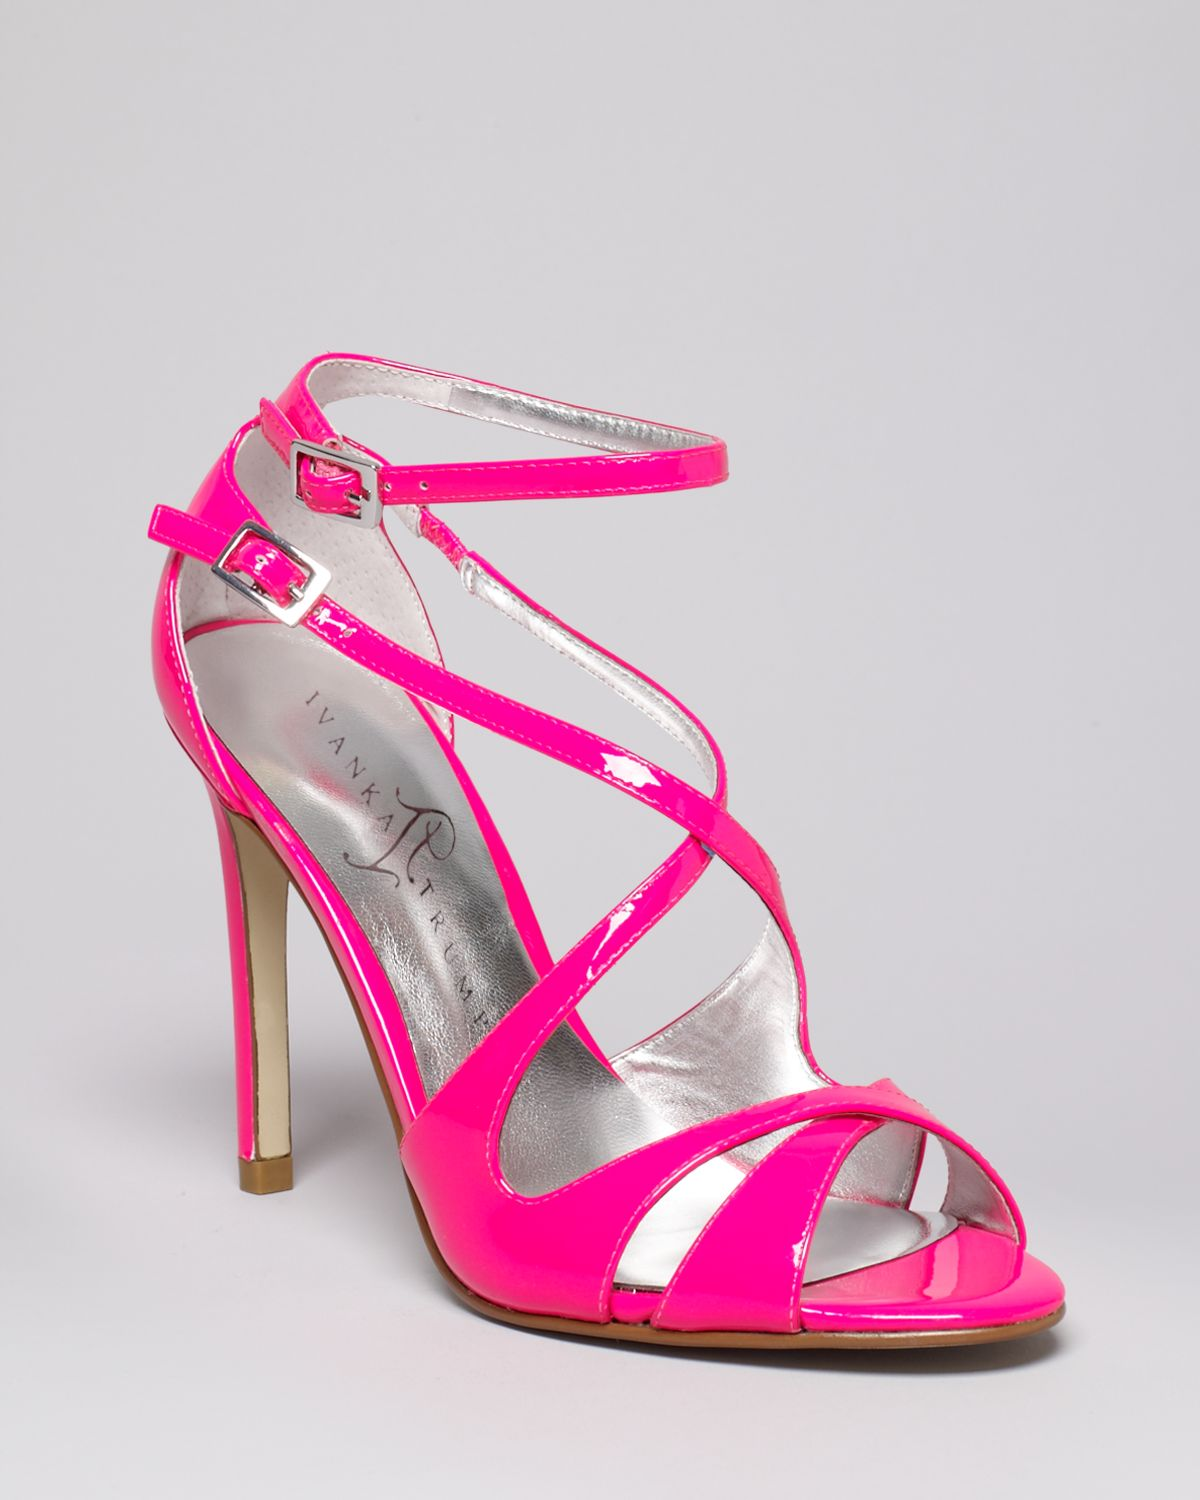 Lyst - Ivanka Trump Helice High Heel Strappy Sandals In Pink-5880